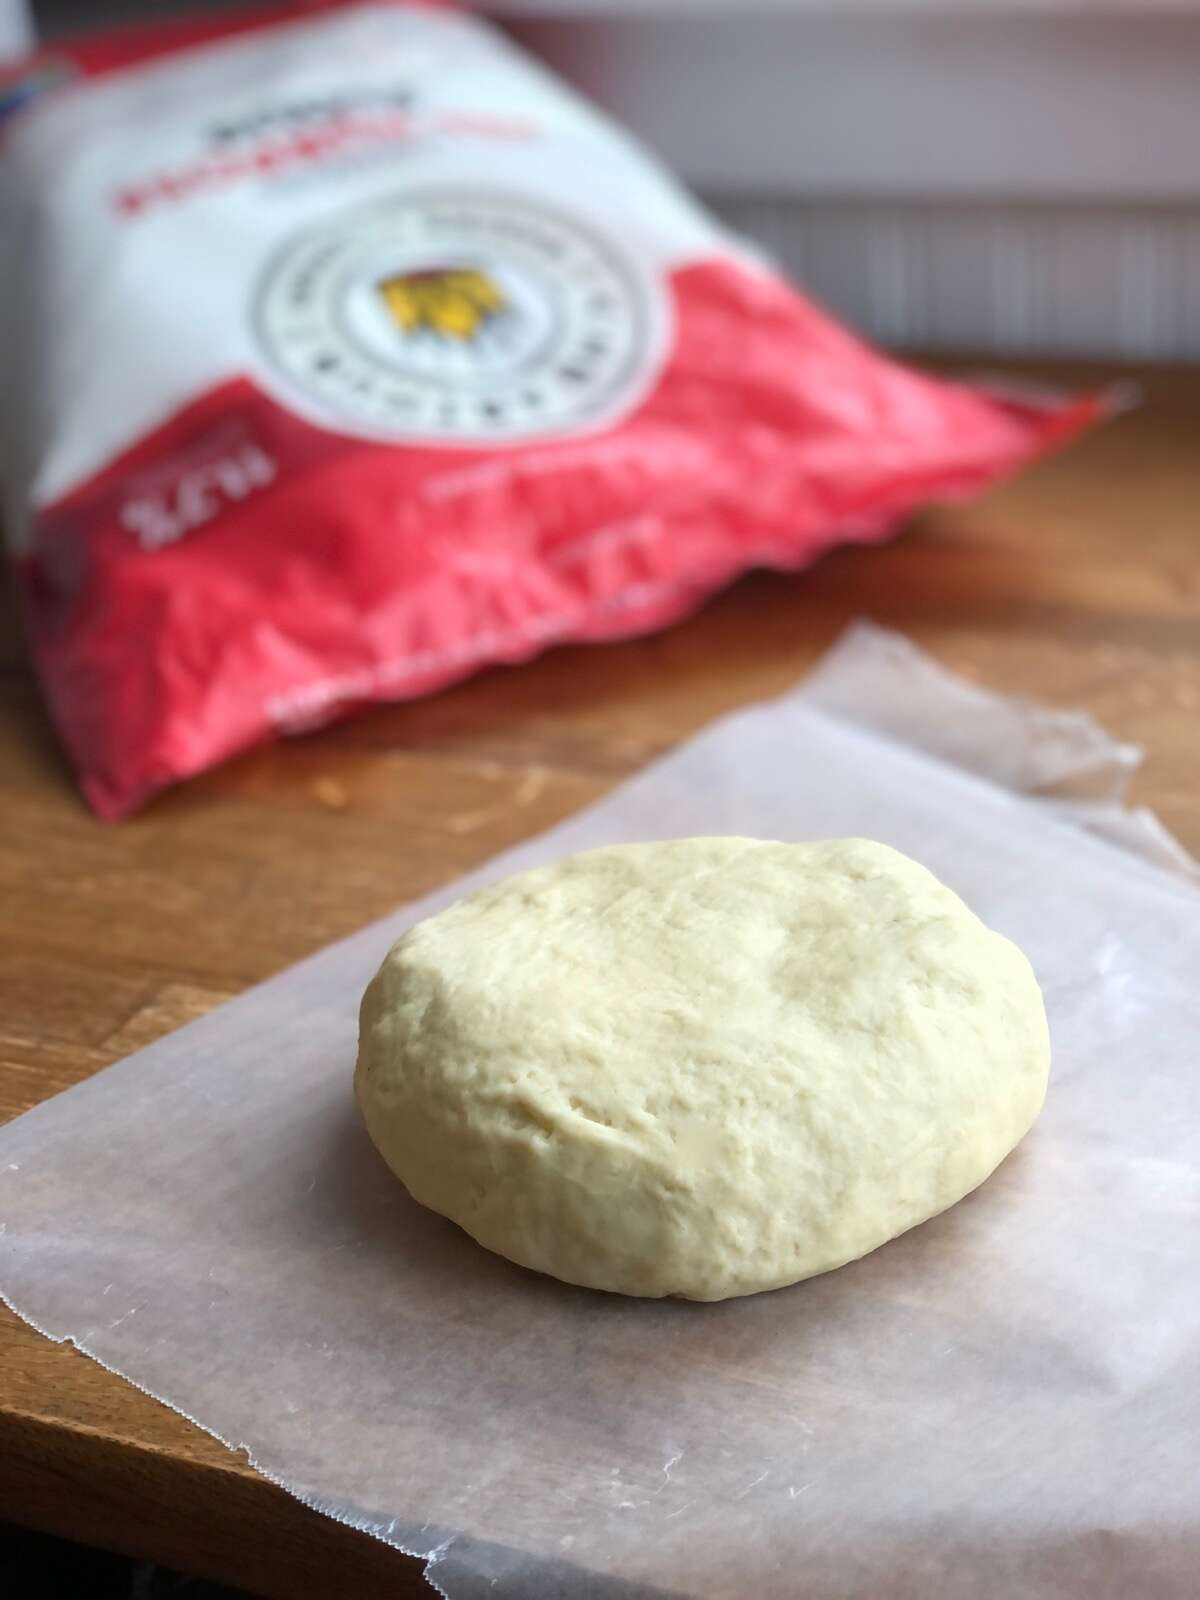 Pierogi dough flattened into a disc, ready to wrap and chill.